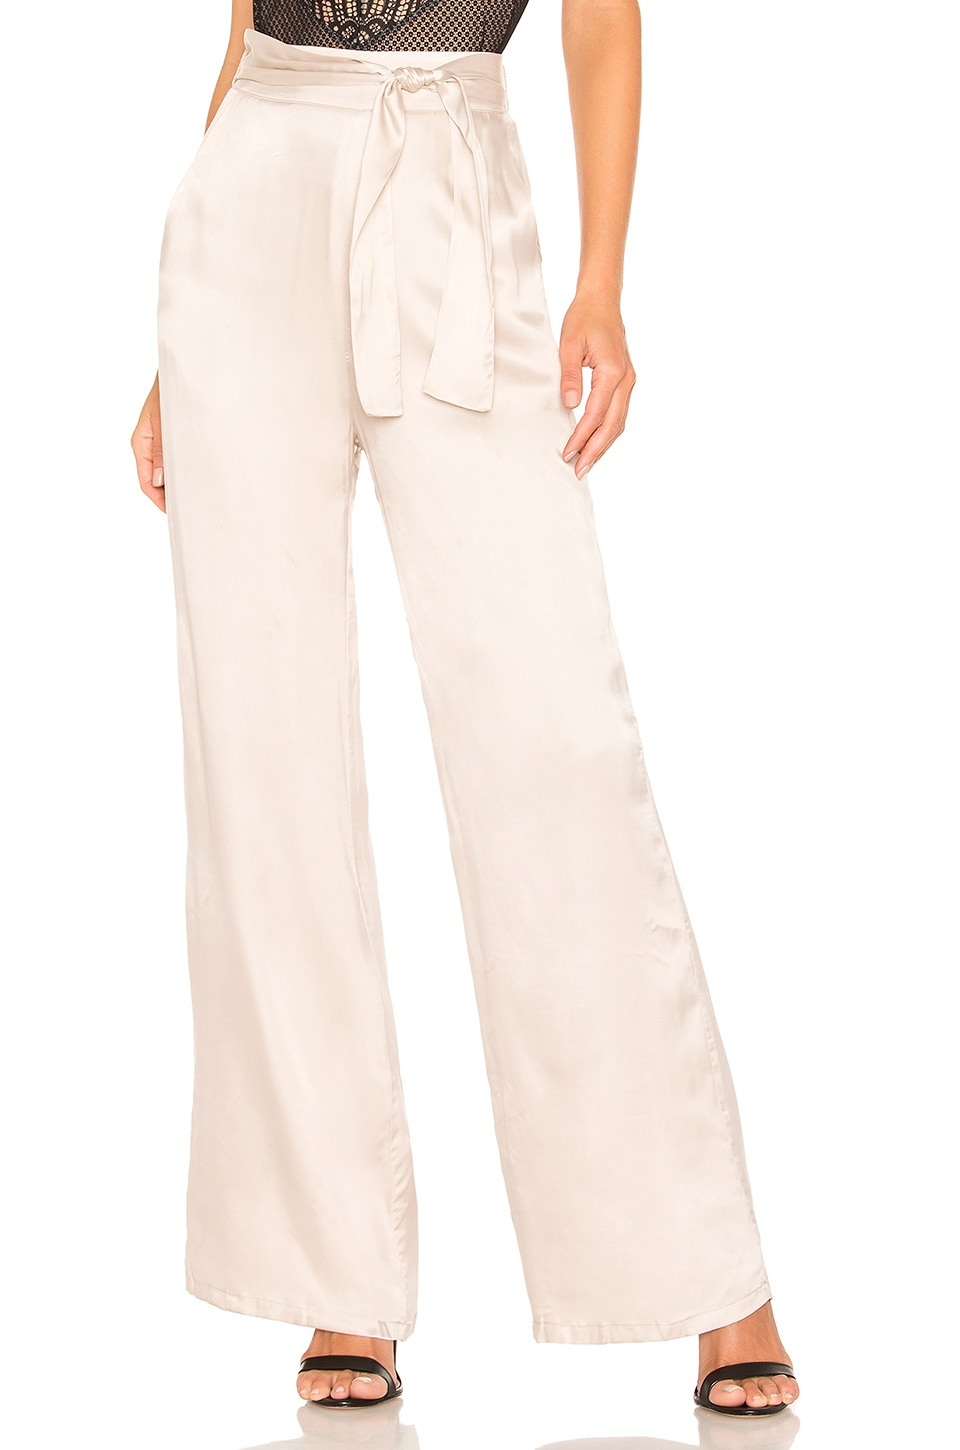 Lovers + Friends Ariana Pant in Nude